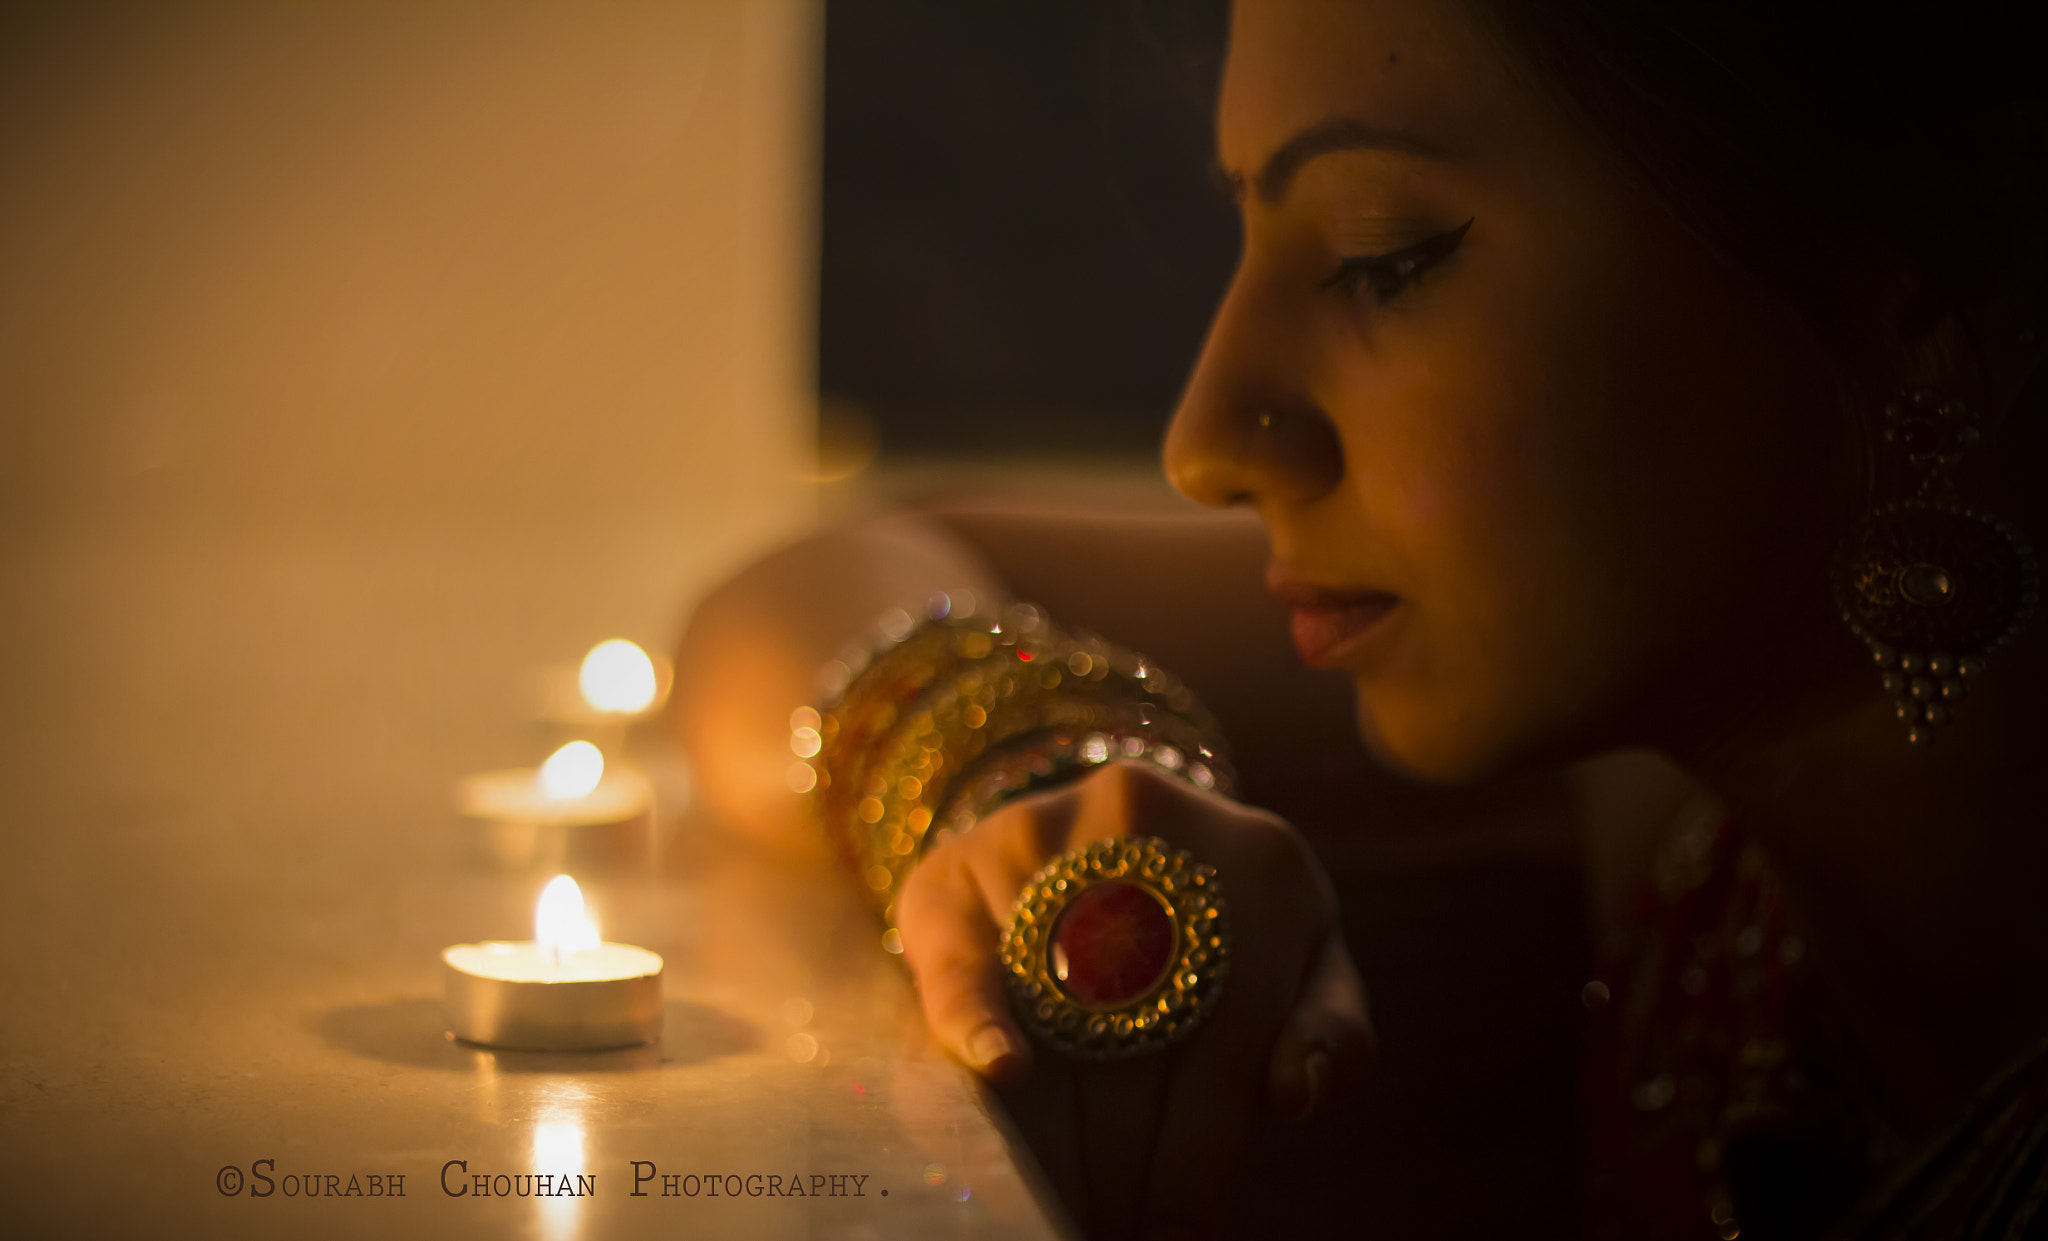 Photograph Indian_Beauty by sourabh chouhan on 500px